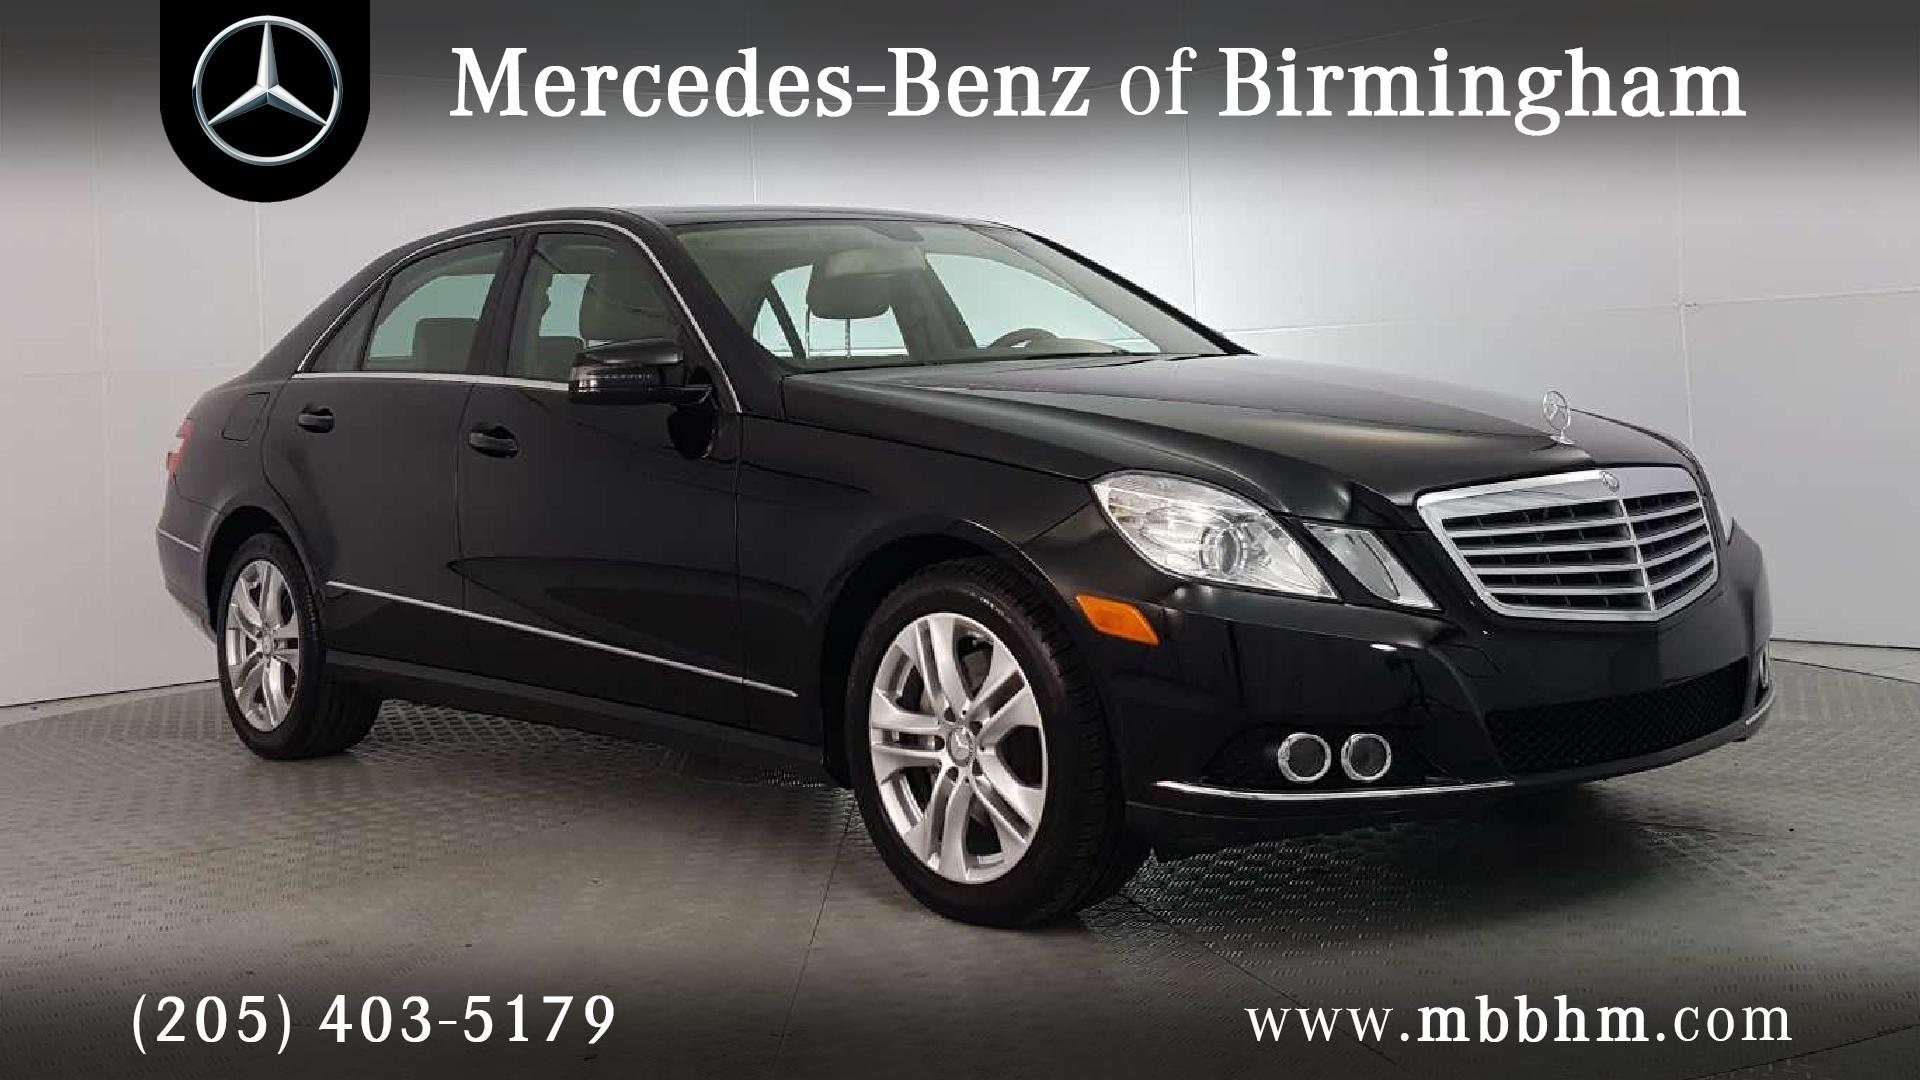 186 Pre-Owned Vehicles in Stock   Mercedes-Benz of Birmingham